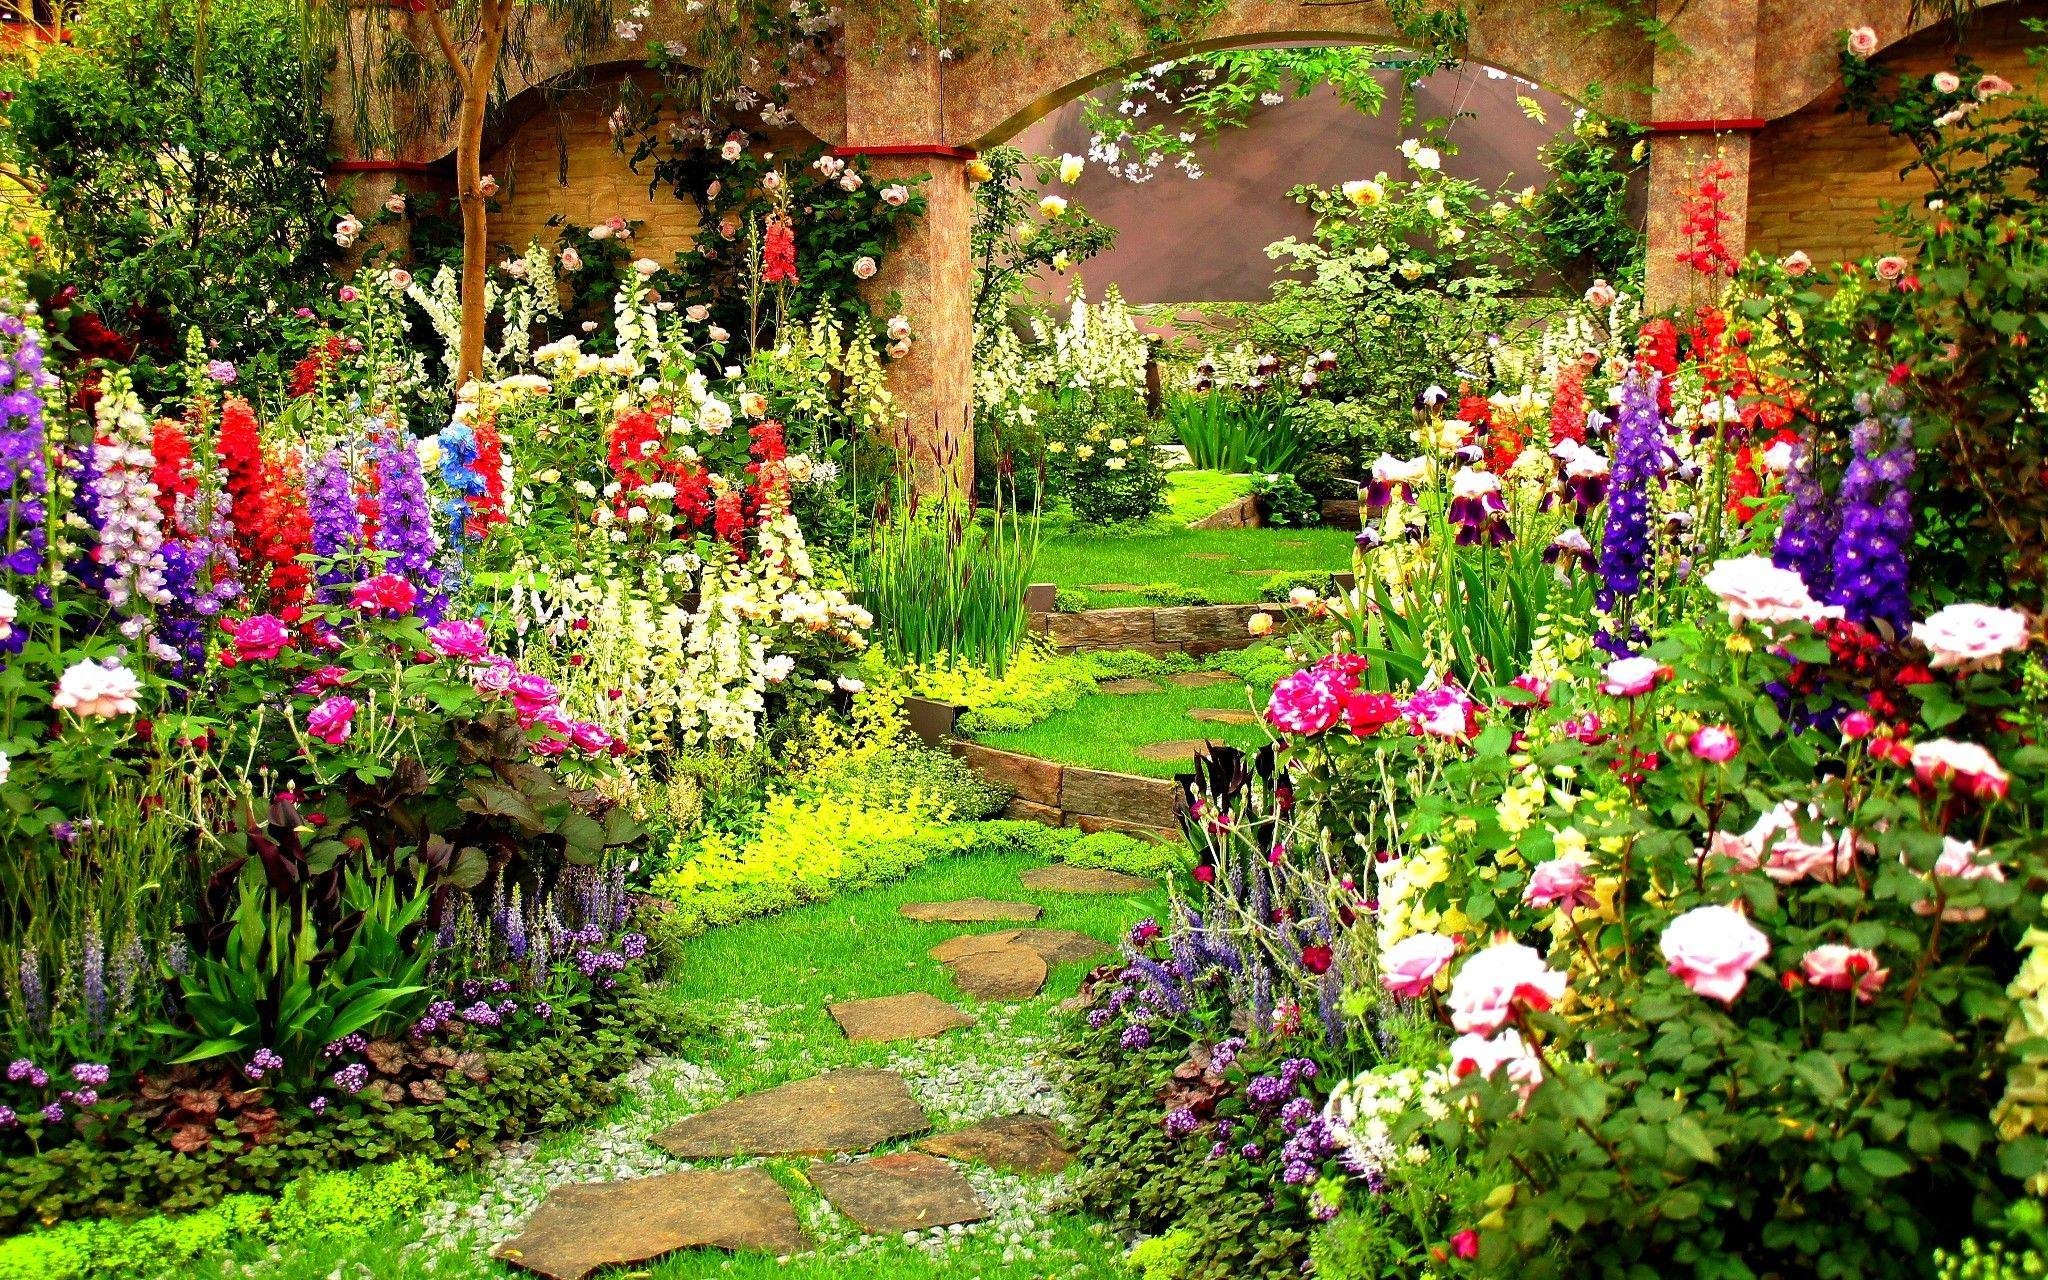 Spring garden wallpapers top free spring garden - Garden screensavers free ...